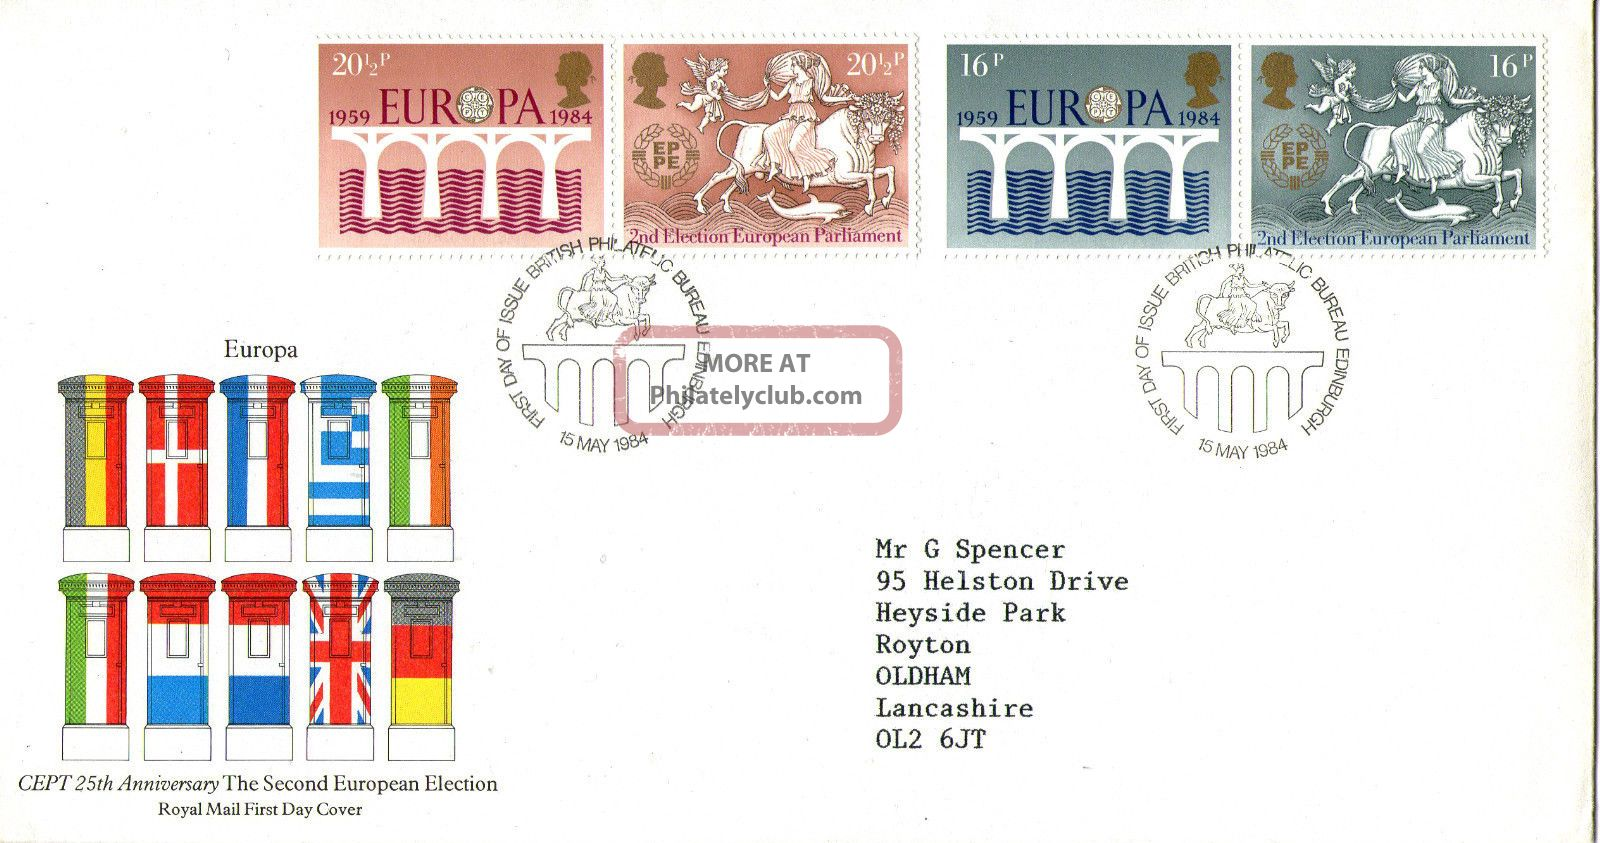 15 May 1984 Europa Royal Mail First Day Cover Bureau Shs Transportation photo